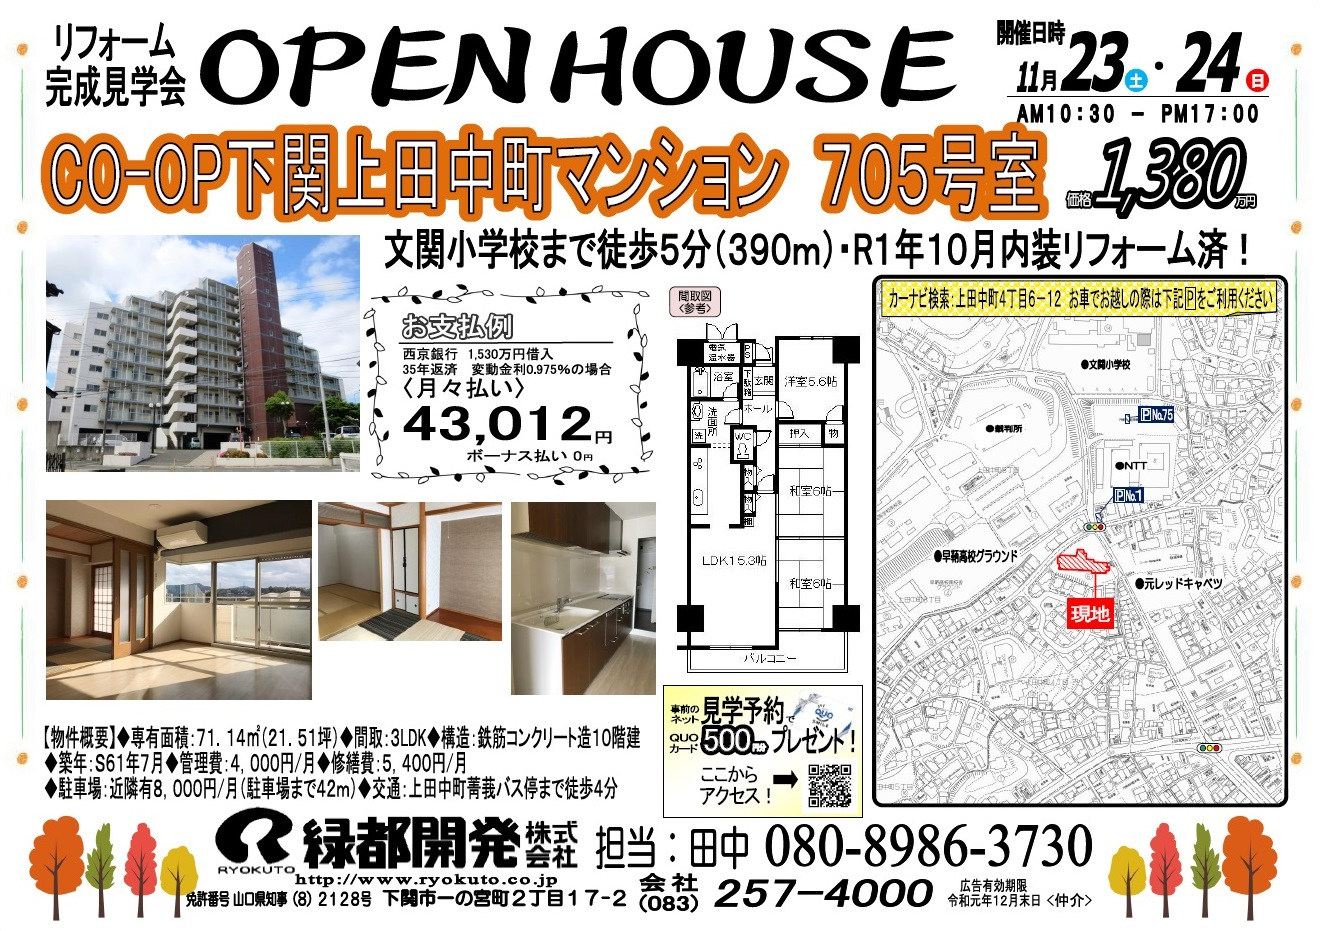 3075CO-OP下関上田中町マンション705 慶子